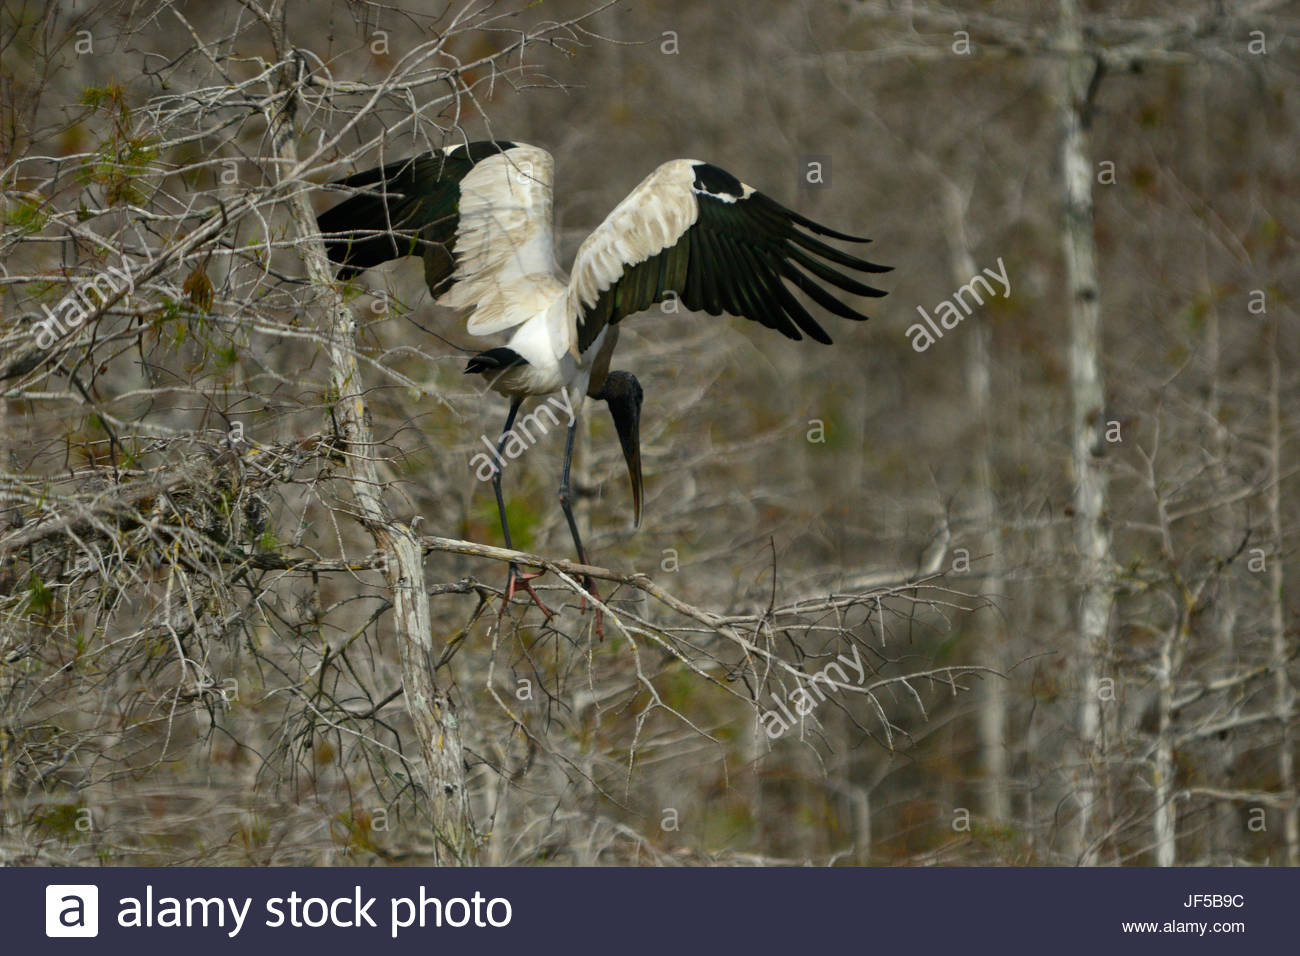 A wood stork with outstretched wings. - Stock Image